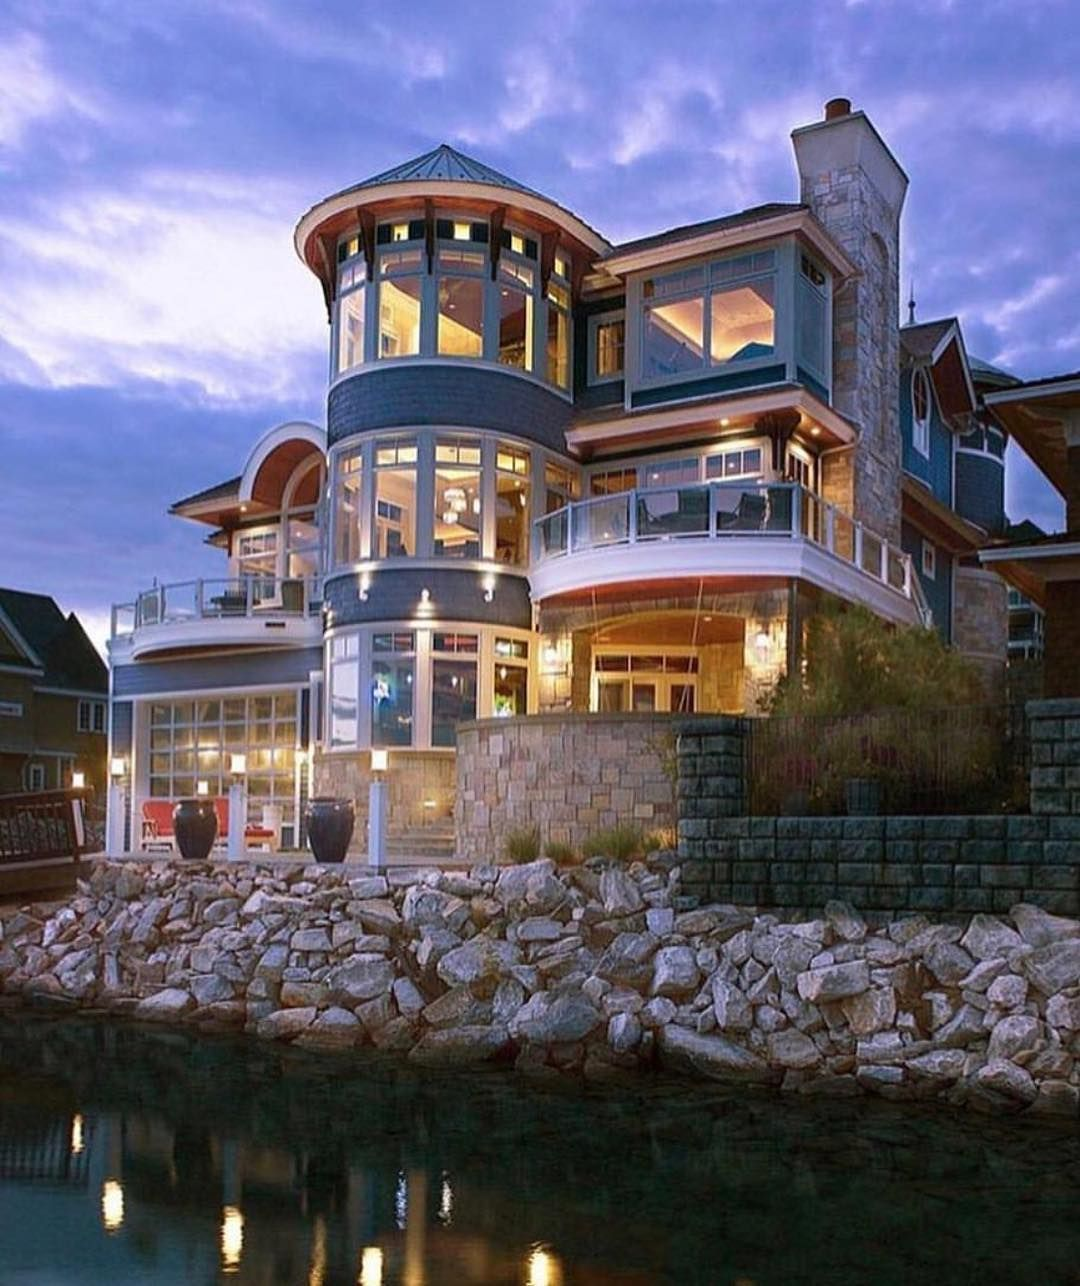 20 best dream house ideas part65 with images mansions on most popular modern dream house exterior design ideas the best destination id=89230